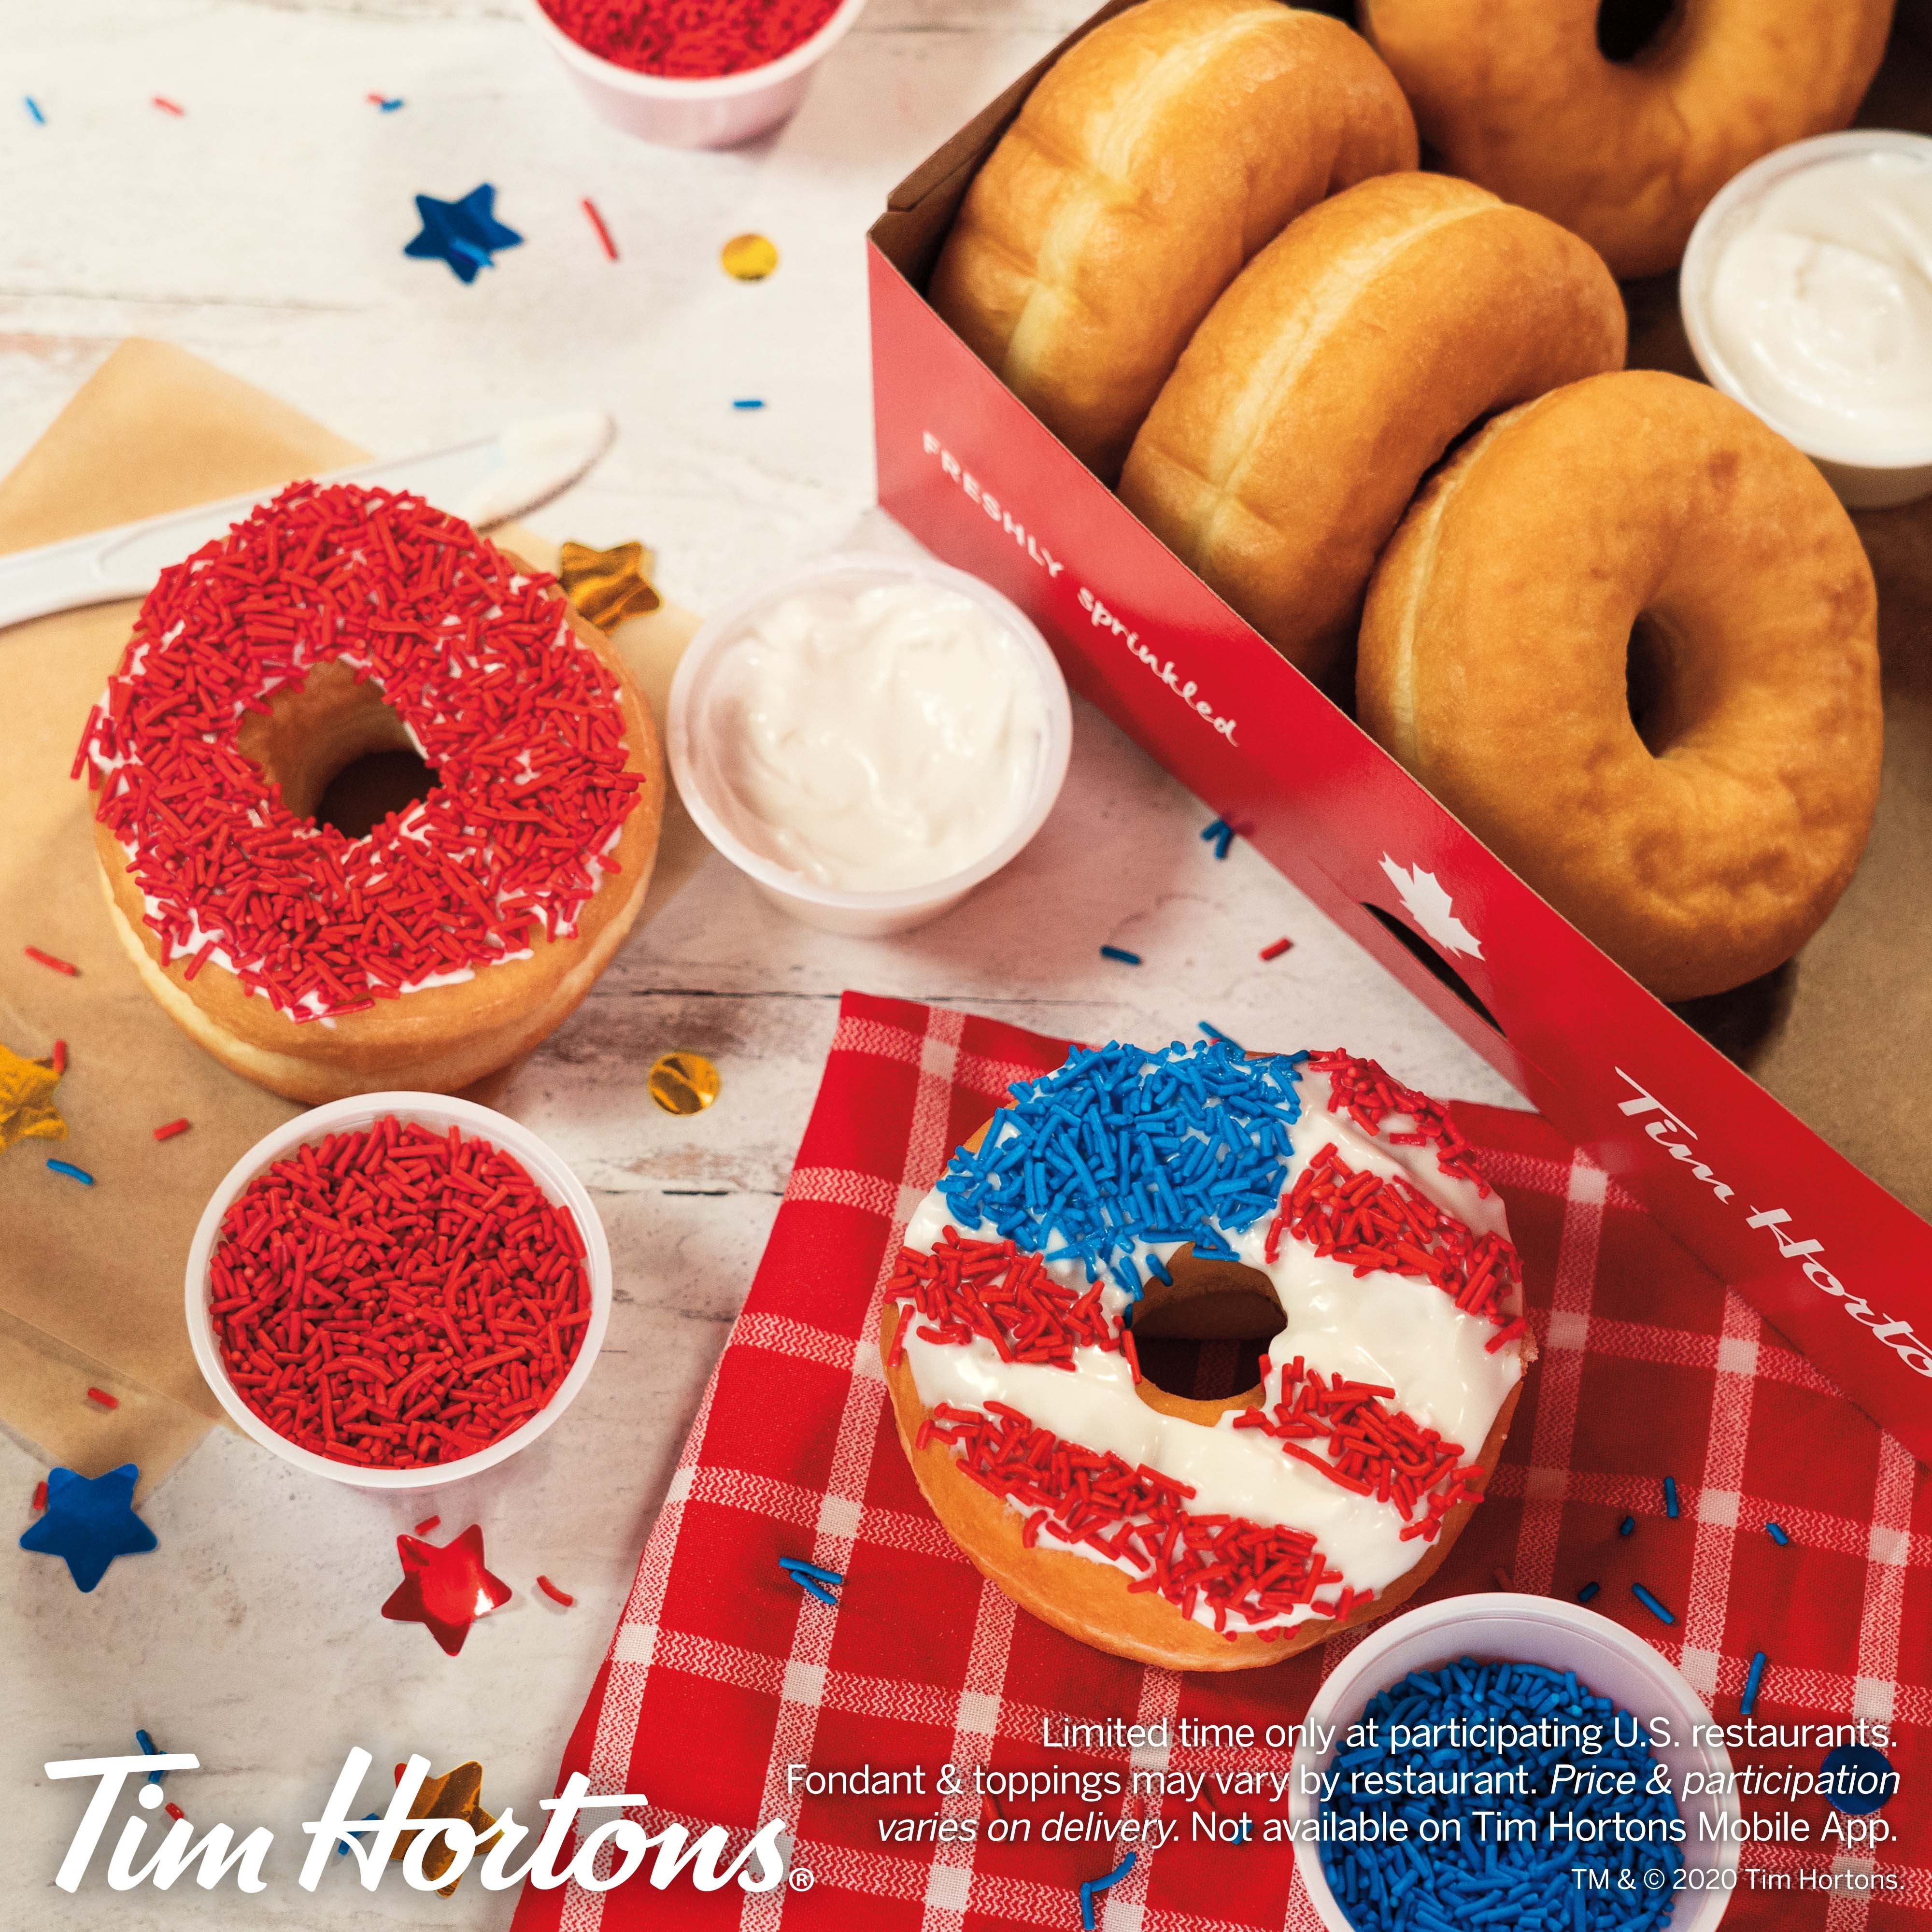 Tim Hortons U S Celebrates 4th Of July With Patriotic Diy Donut Kit Business Wire